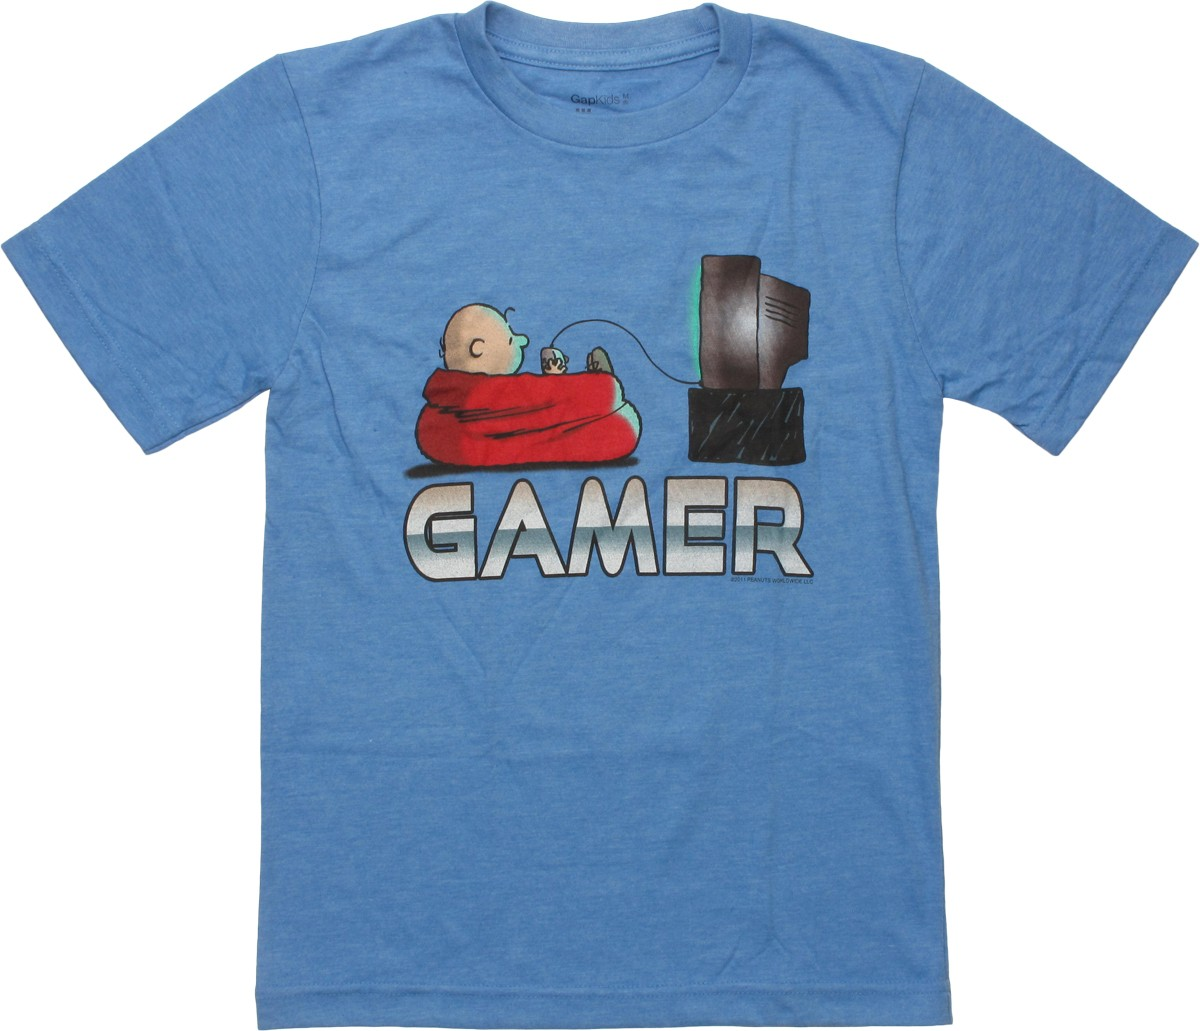 cartoons peanuts peanuts charlie brown gamer youth t shirt. Black Bedroom Furniture Sets. Home Design Ideas